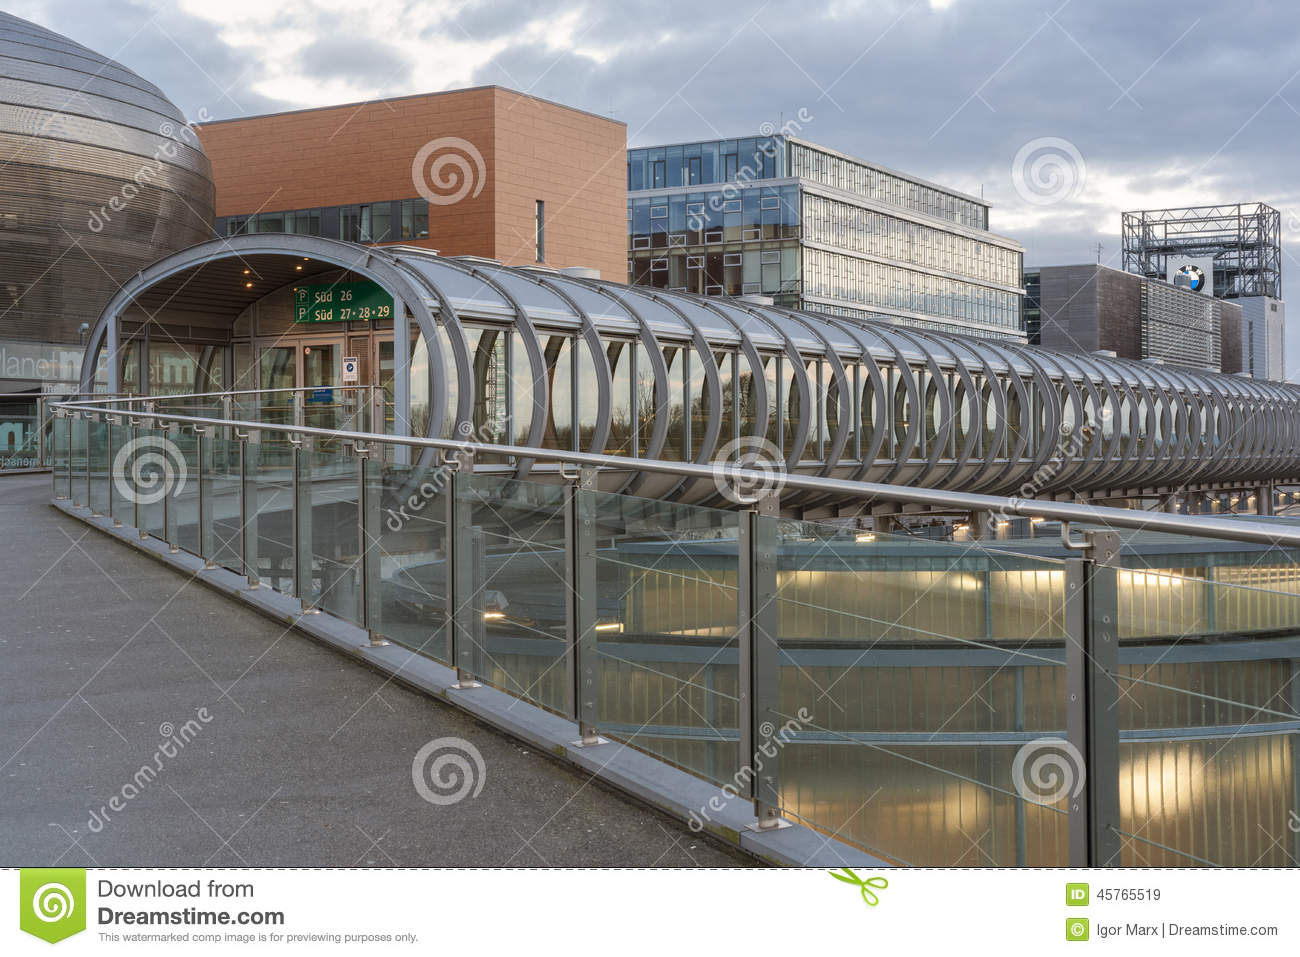 Expo Plaza Hannover Expo Plaza On Hannover Fairground Editorial Stock Image Image Of